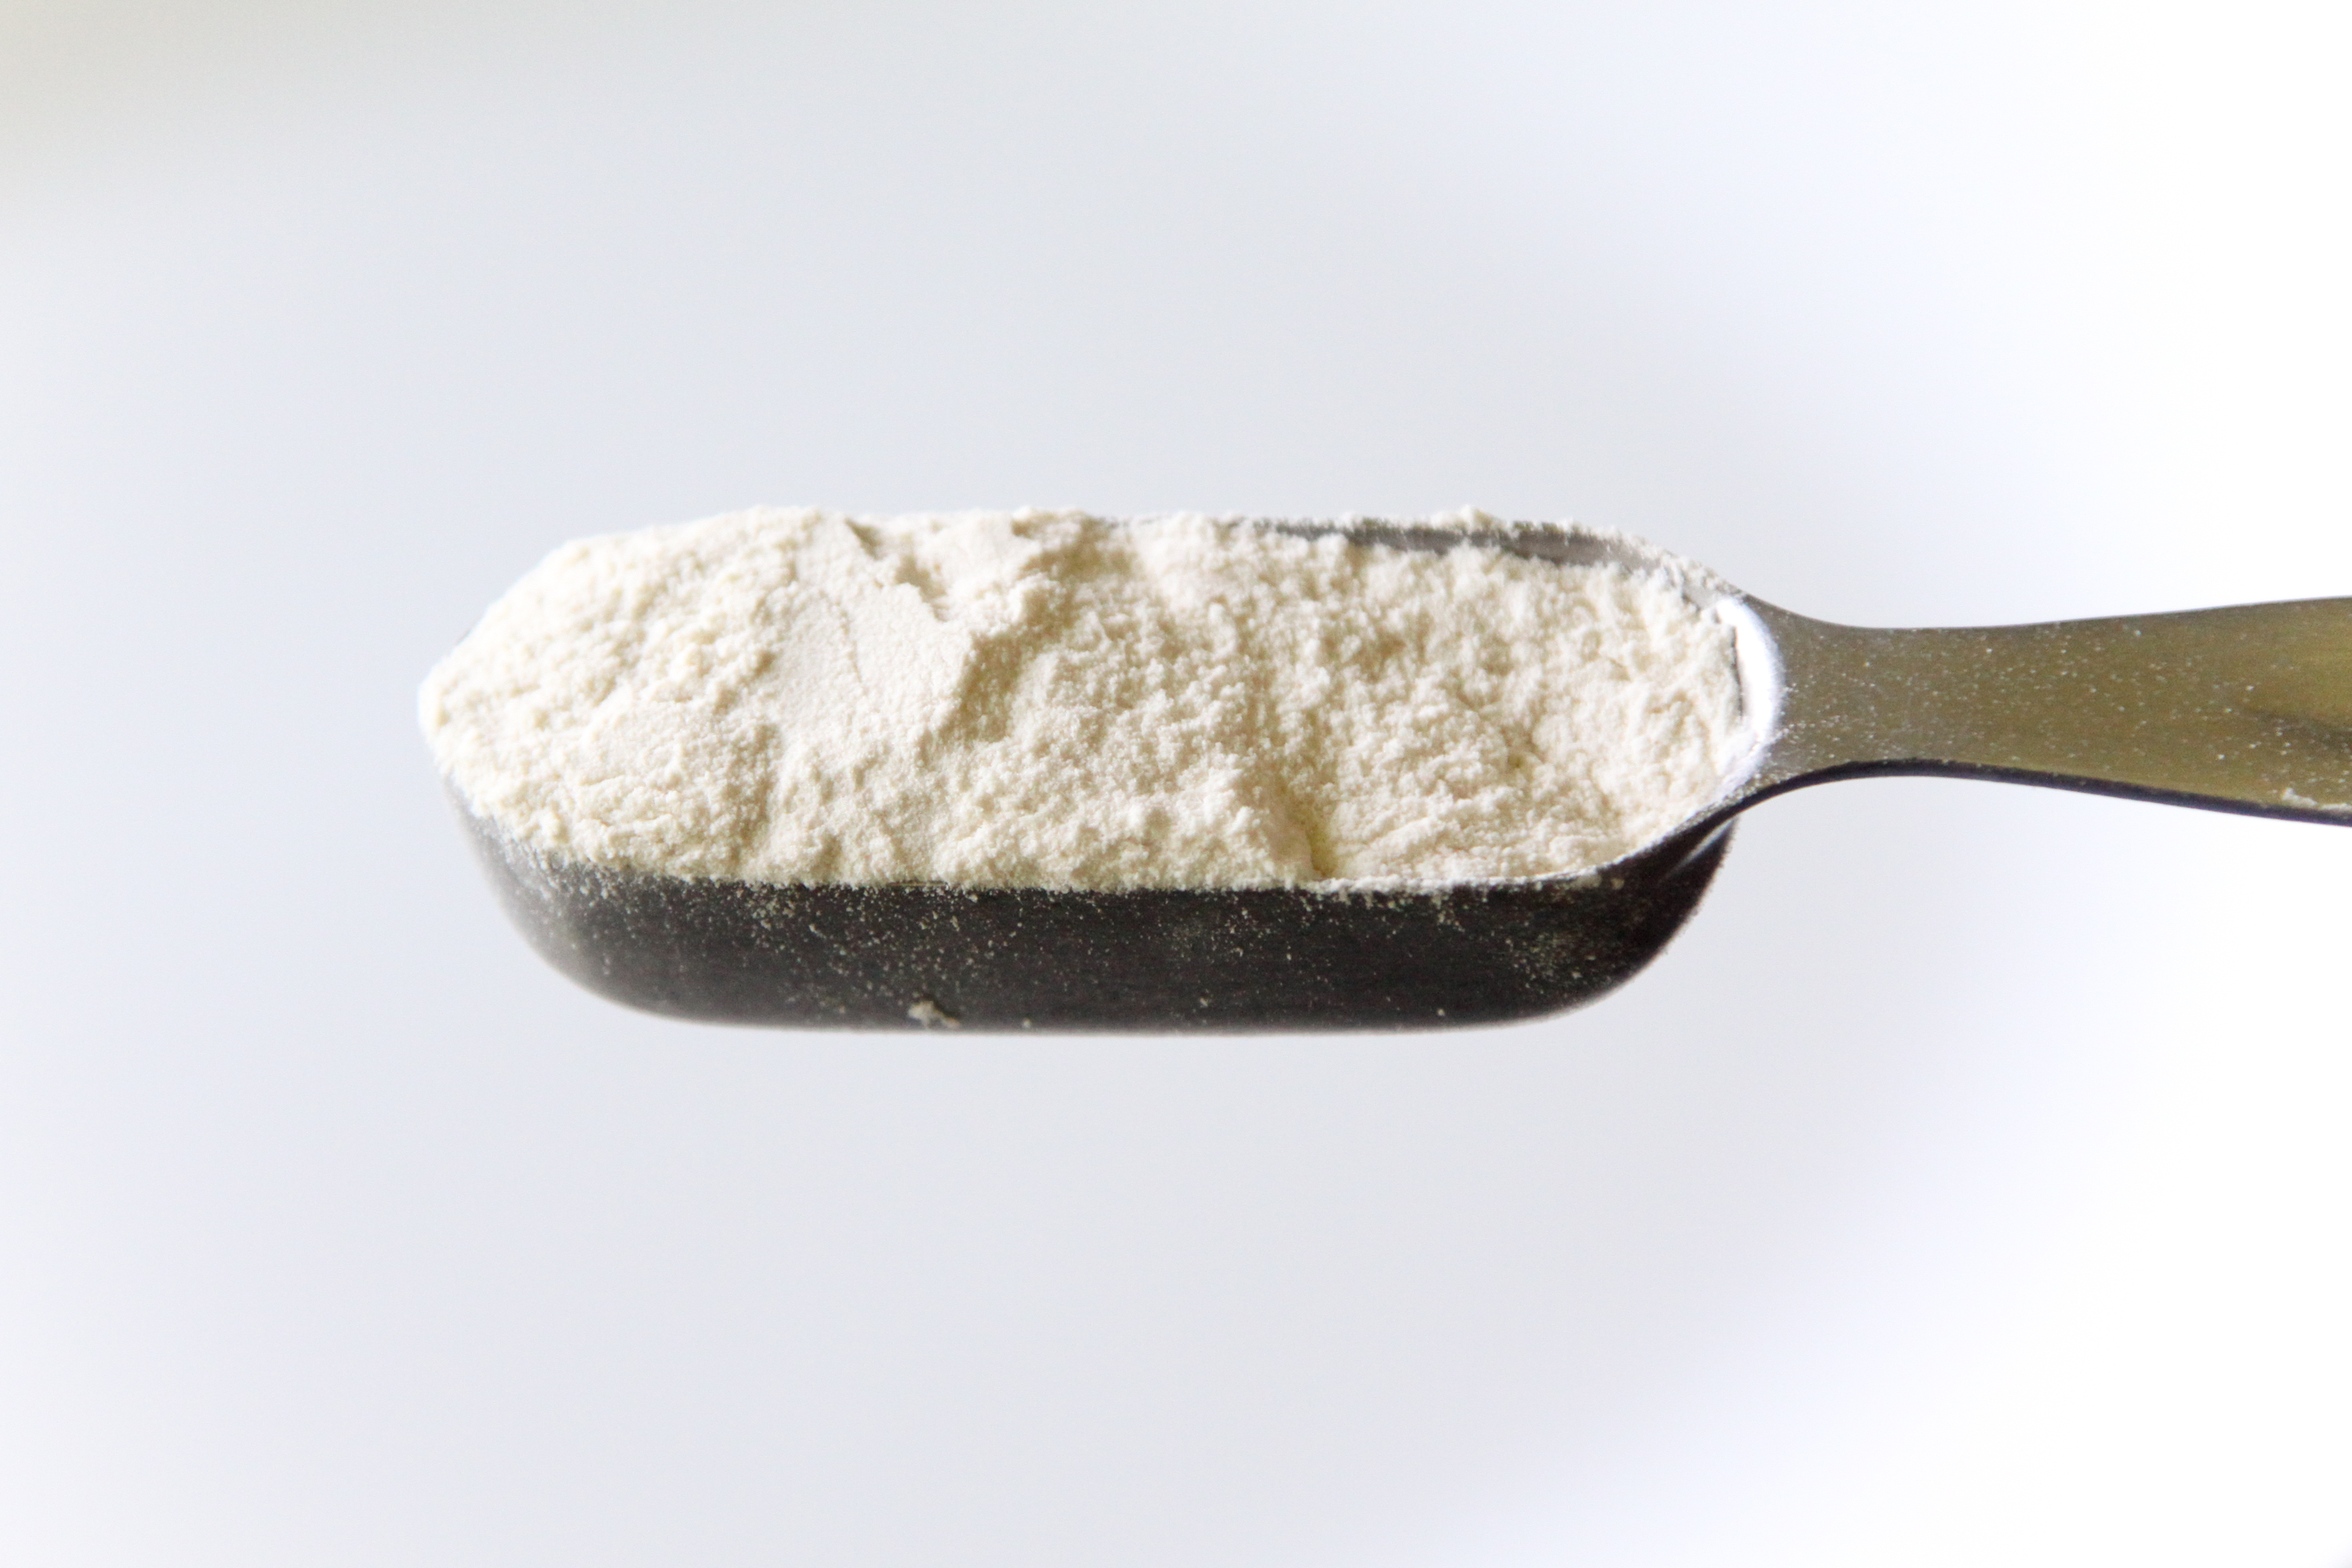 Substitutes for Xanthan Gum | LEAFtv